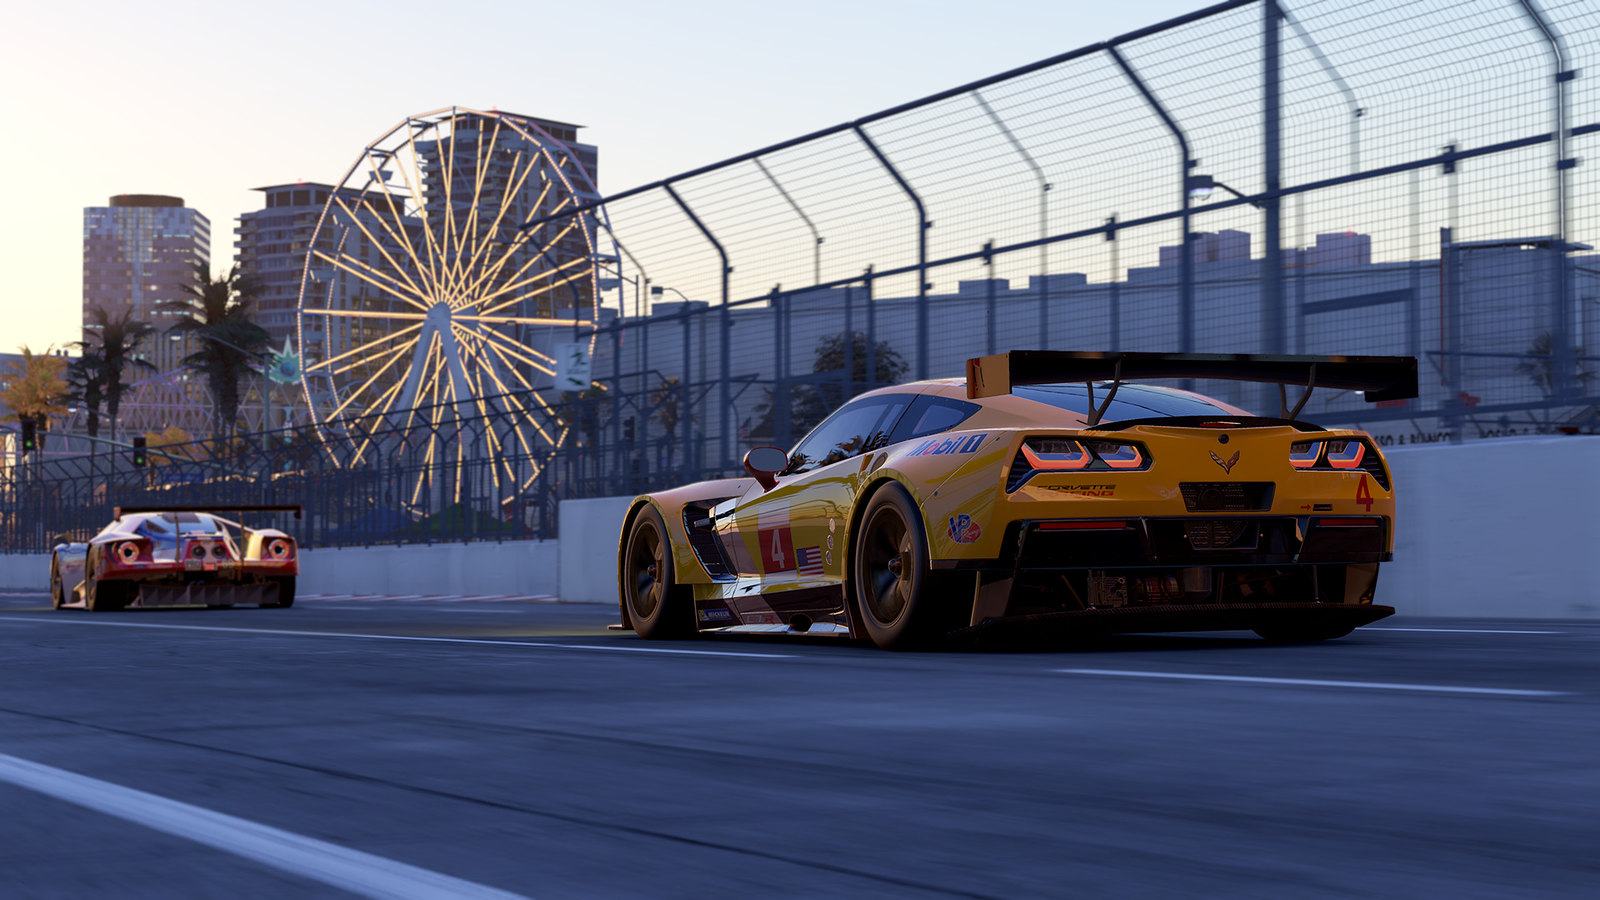 Project CARS 2 Lighting Effects 2